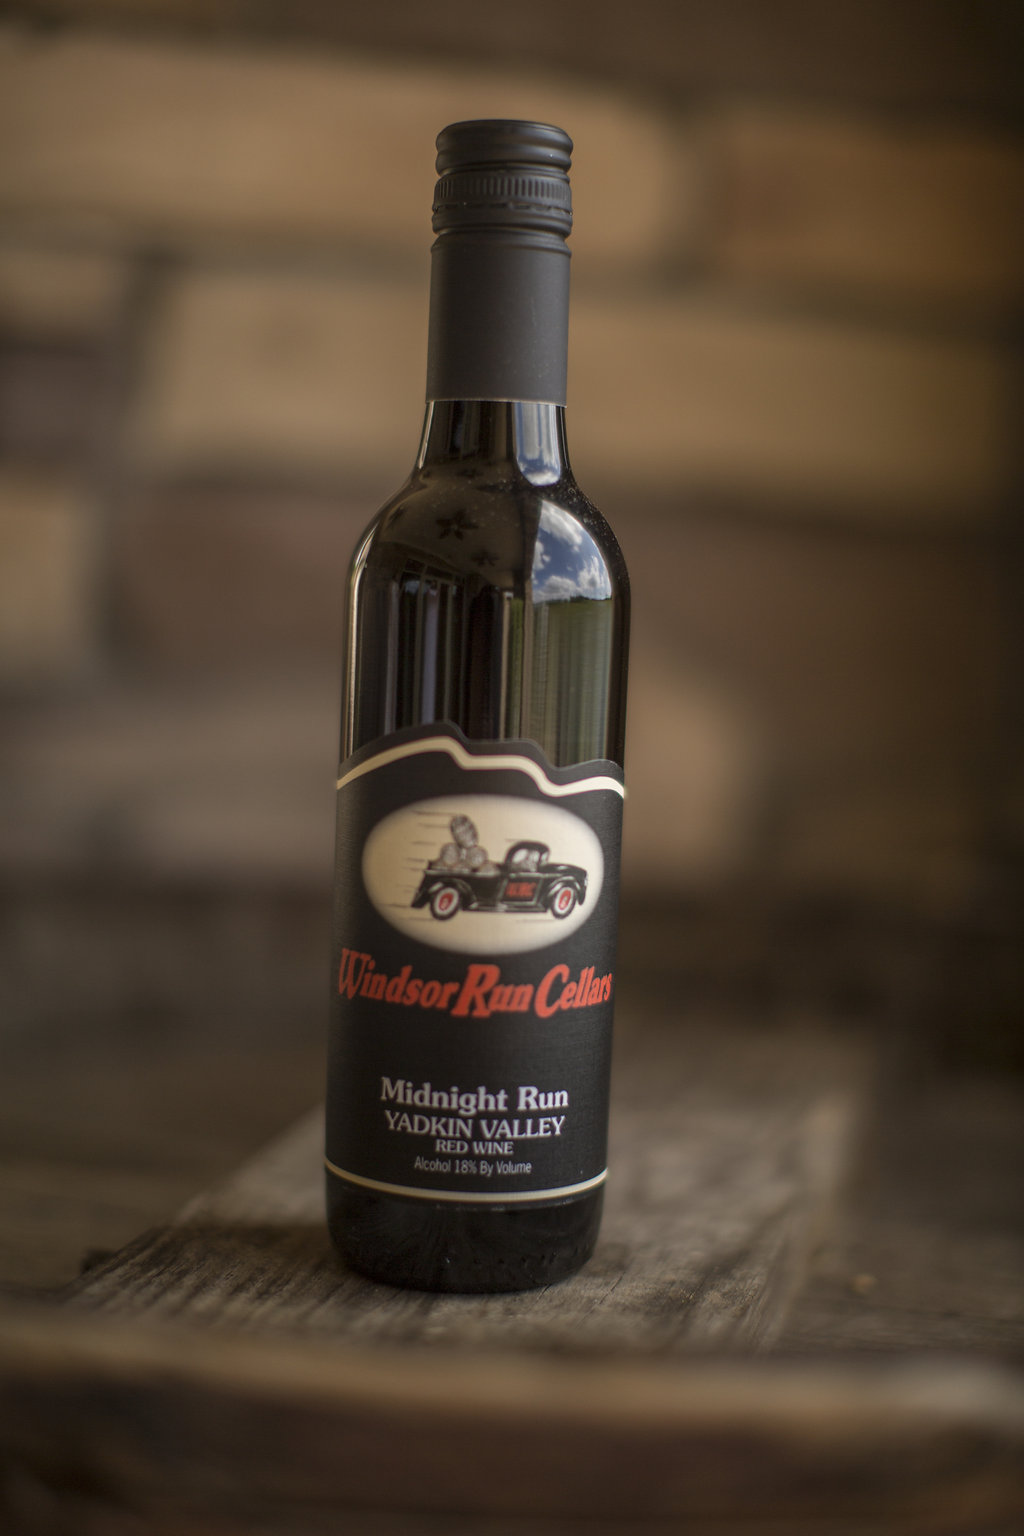 Midnight Run  Our version of a Port style wine. Chambourcin and Petit Verdot grapes, fortified with our brandy. This wine is sweet with balanced alcohol (18%) and has flavors of chocolate, mocha, blackberries, and black currant with jam and raisin notes  $25